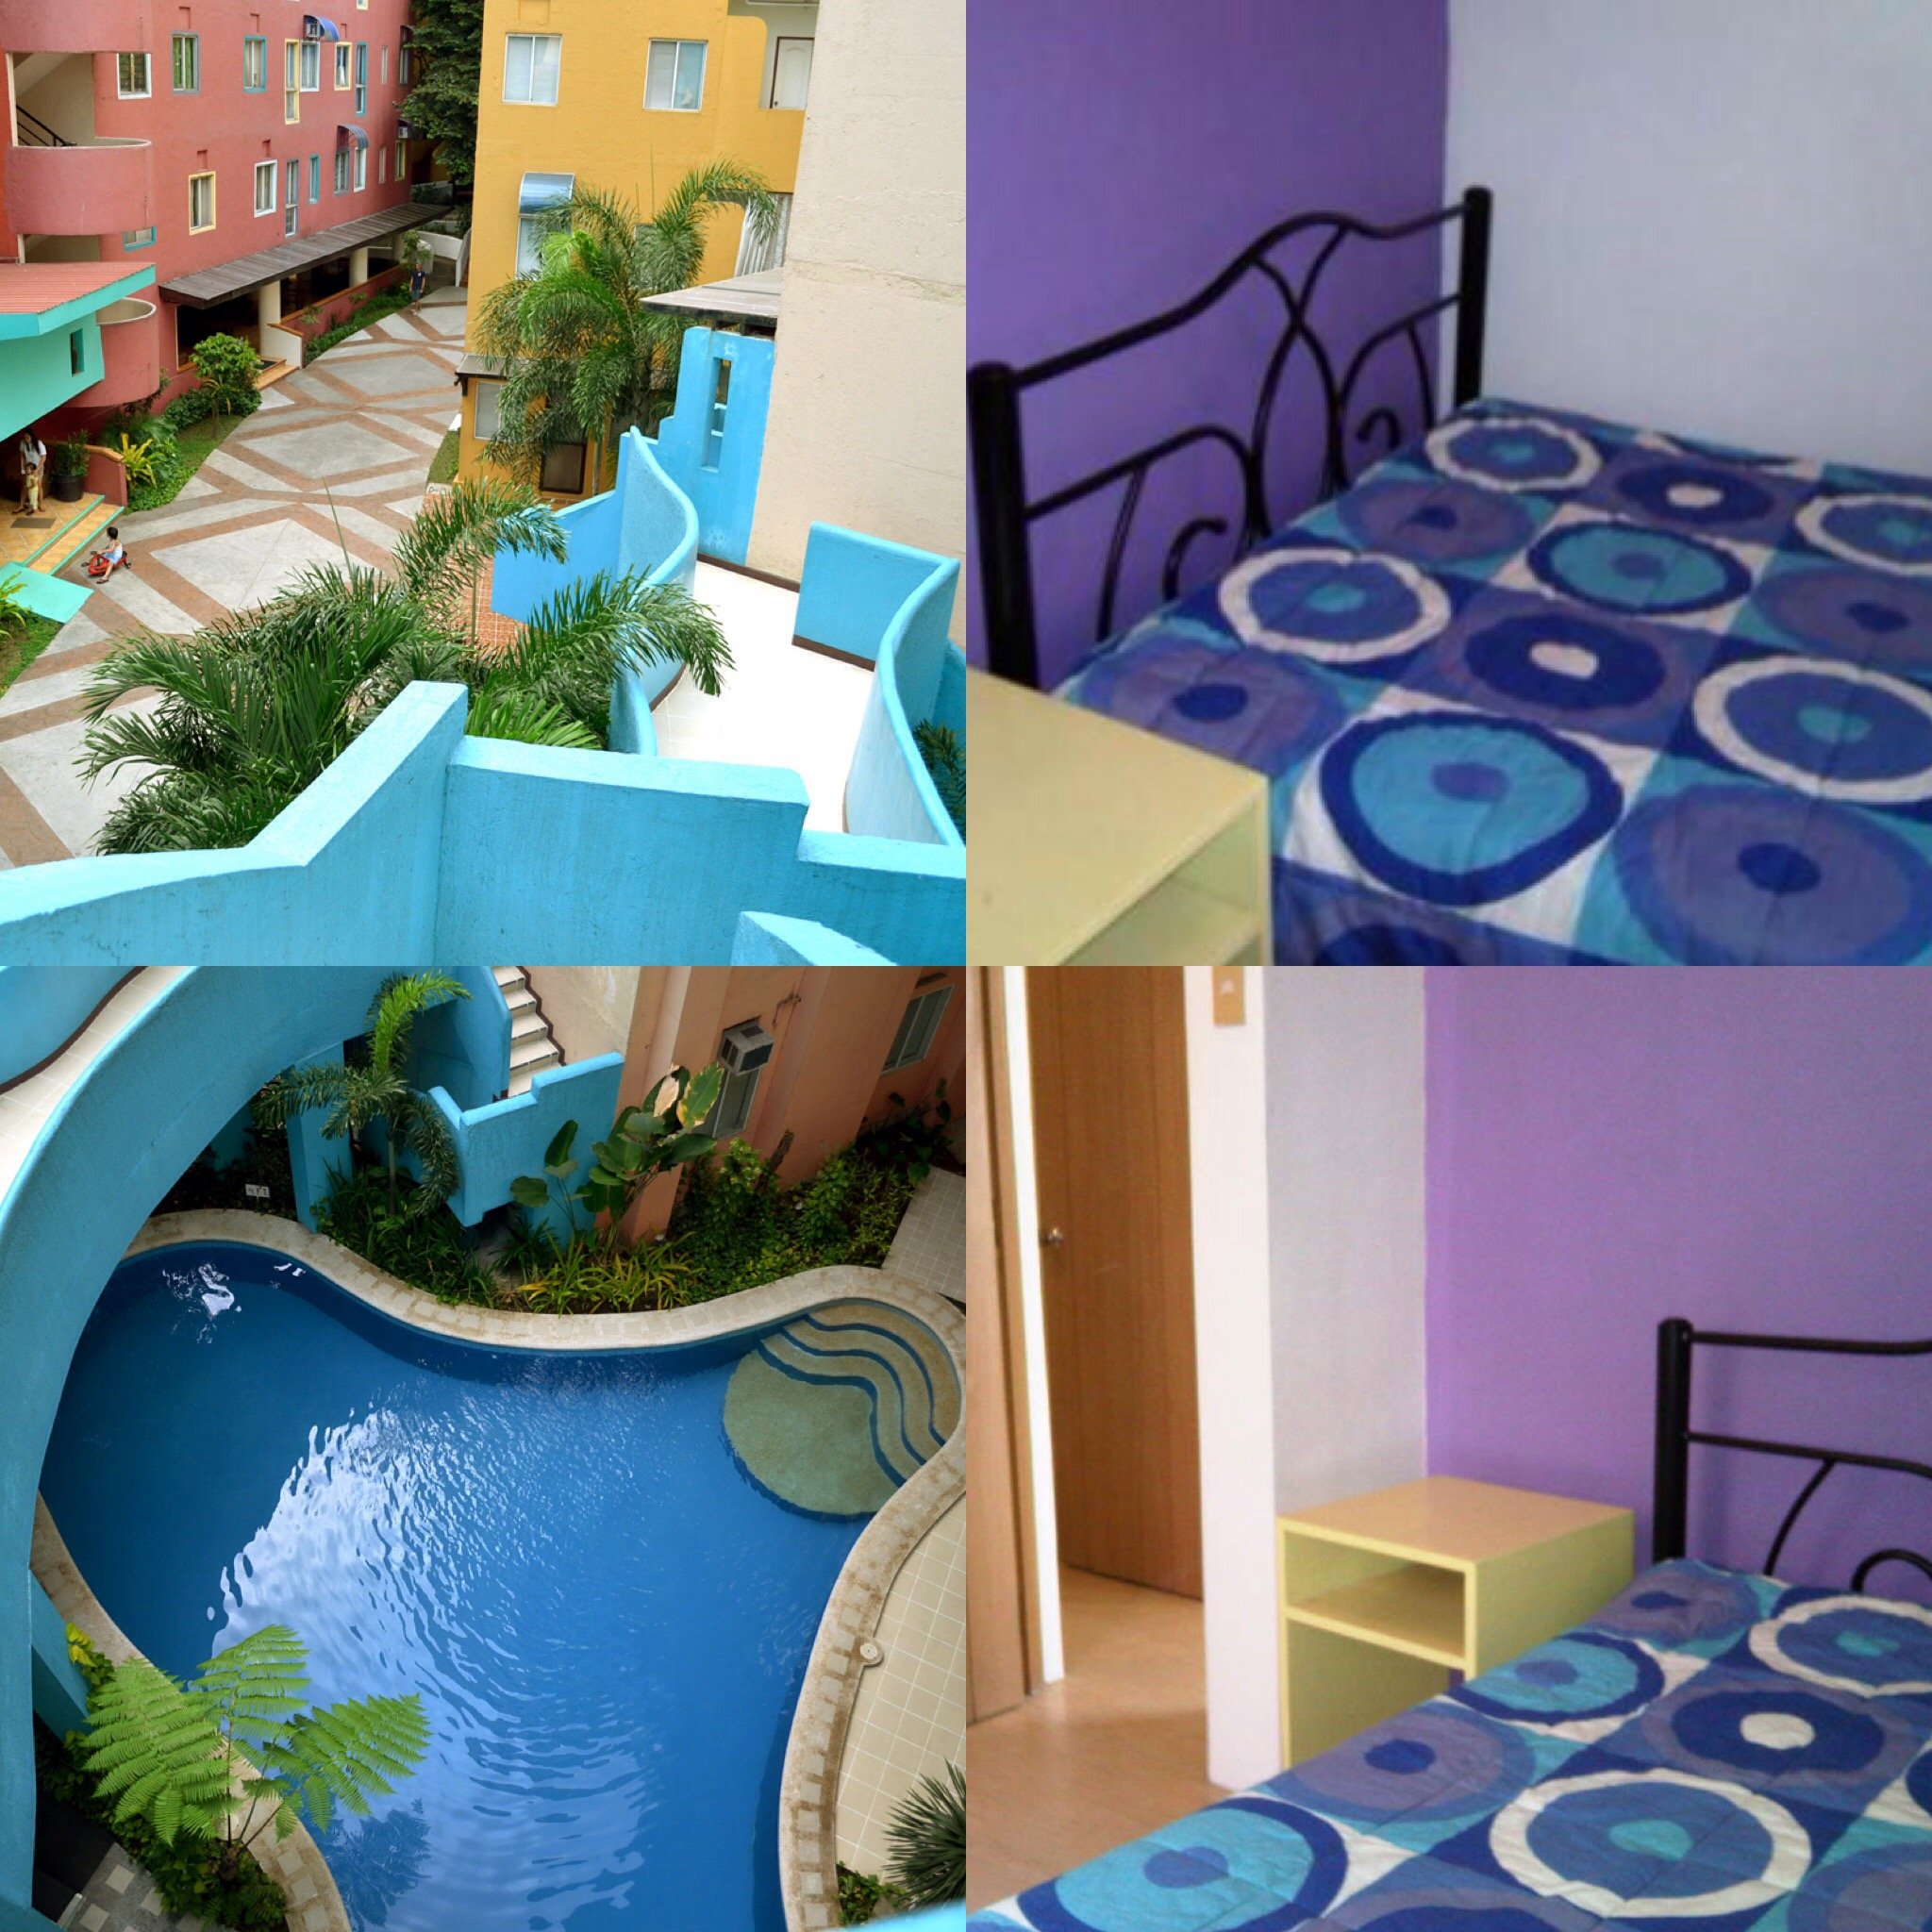 for rent condo 2br 9k qc 09235564517 rico navarro